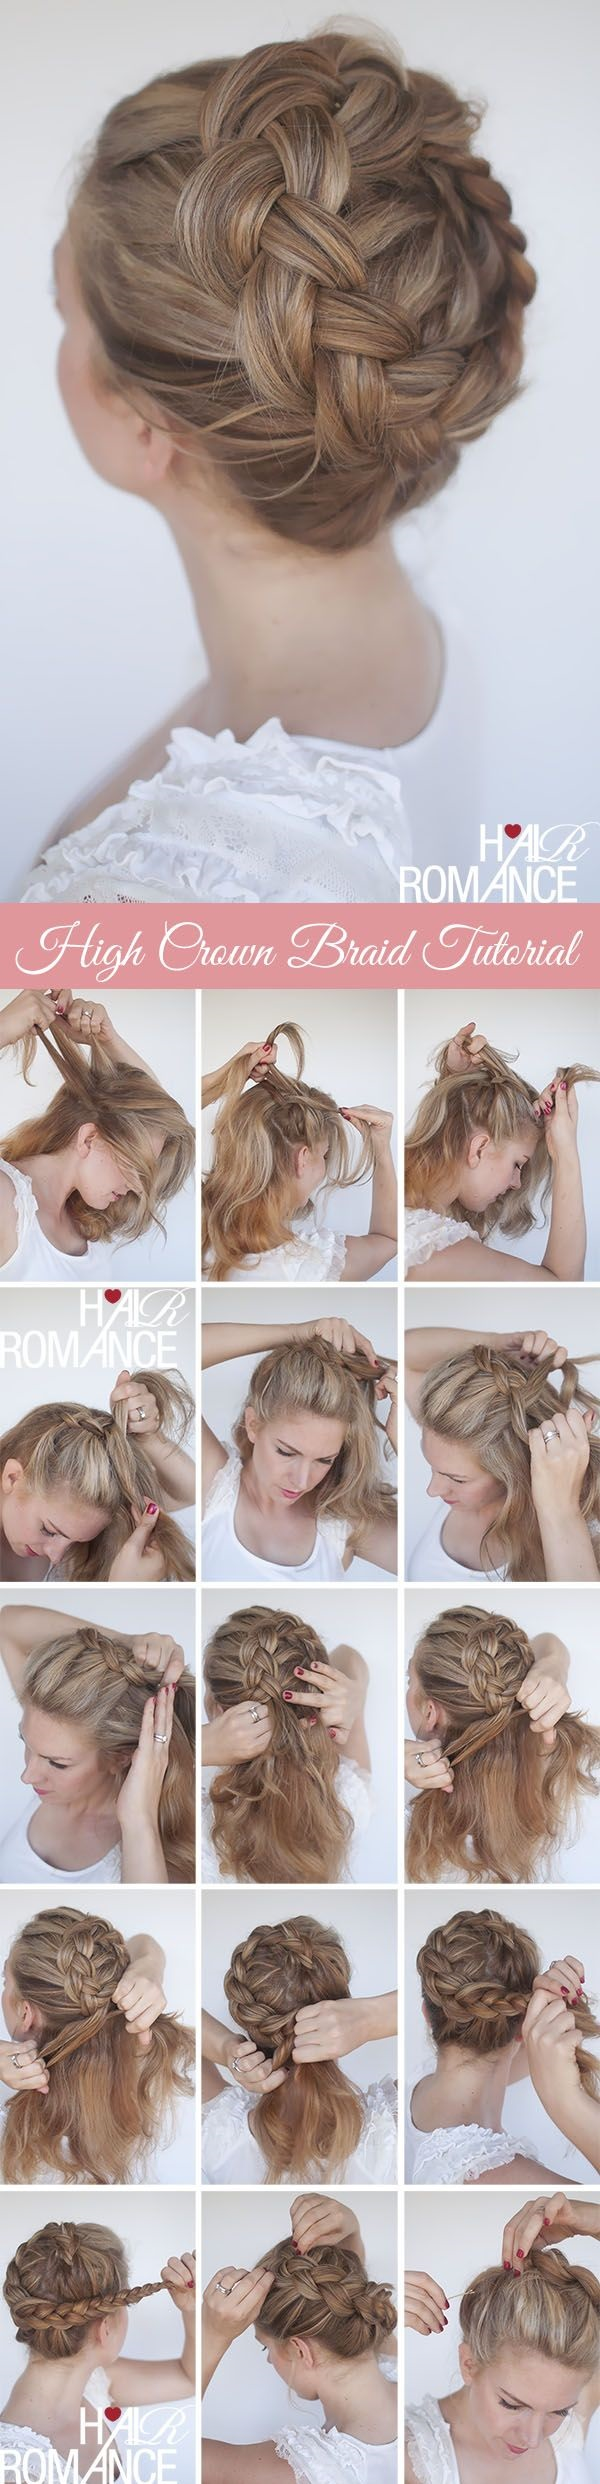 Simple Five Minute Hairstyles (35)